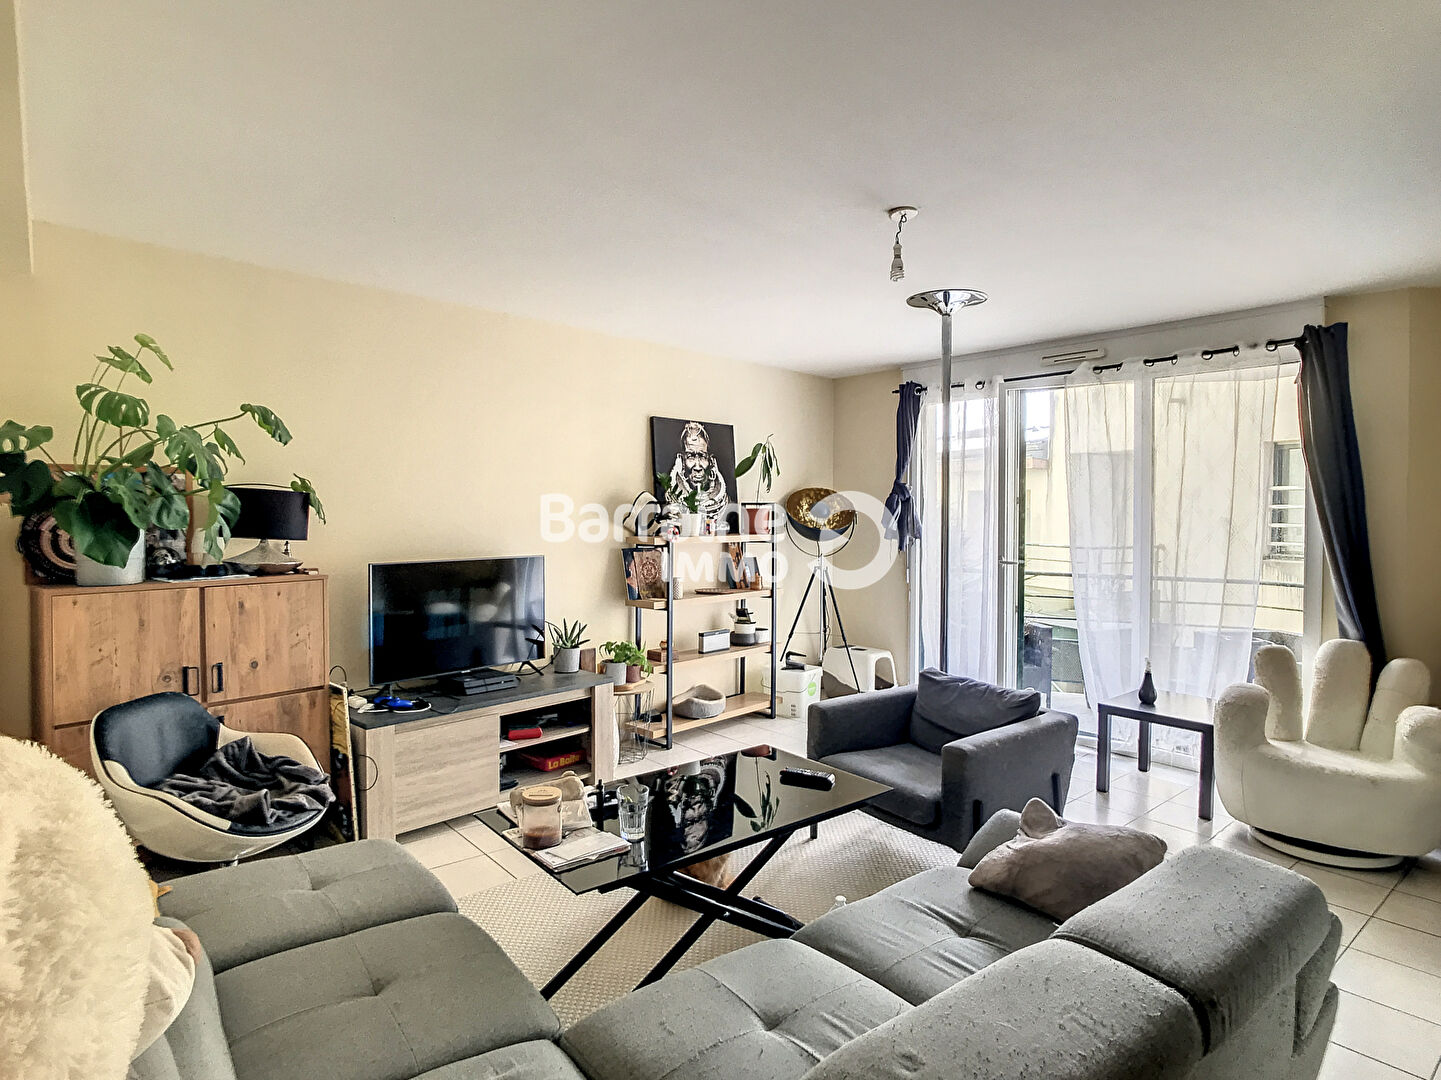 LOCATION  BREST  SAINT MARC  APPARTEMENT T2  56 M²  BEAUX VOLUMES  PROXIMITE BOURG